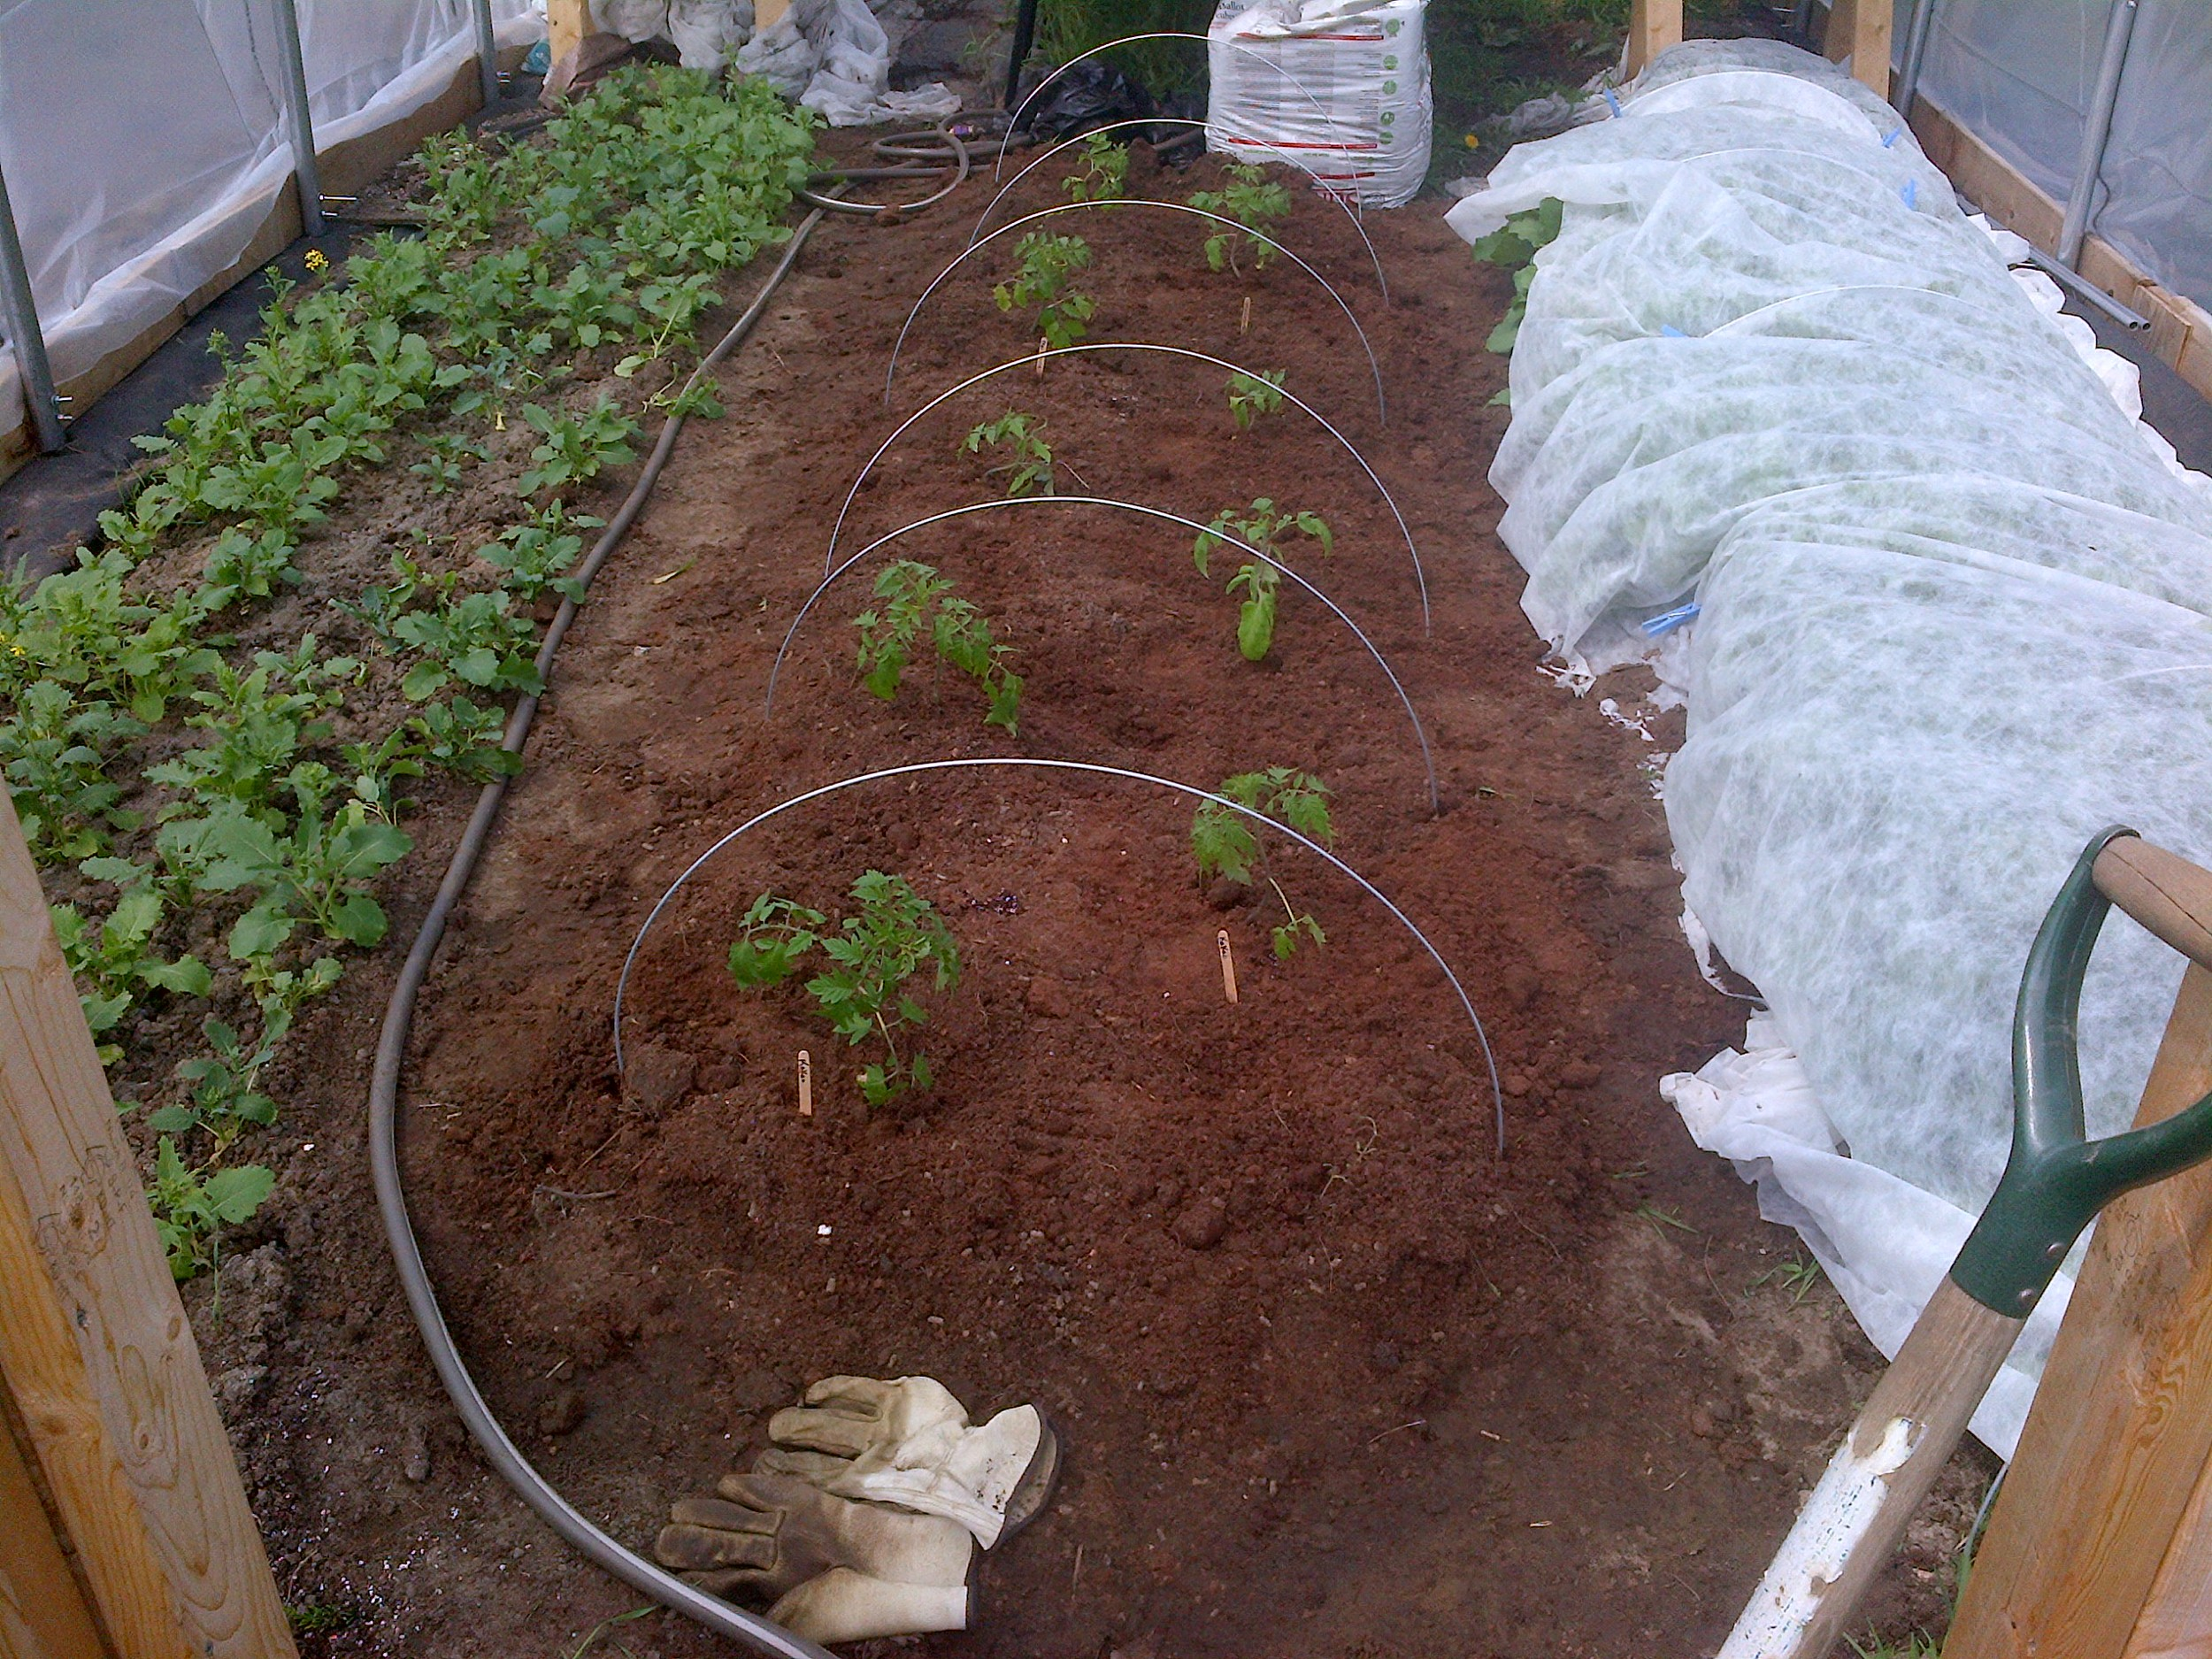 Tomatoes in their new home